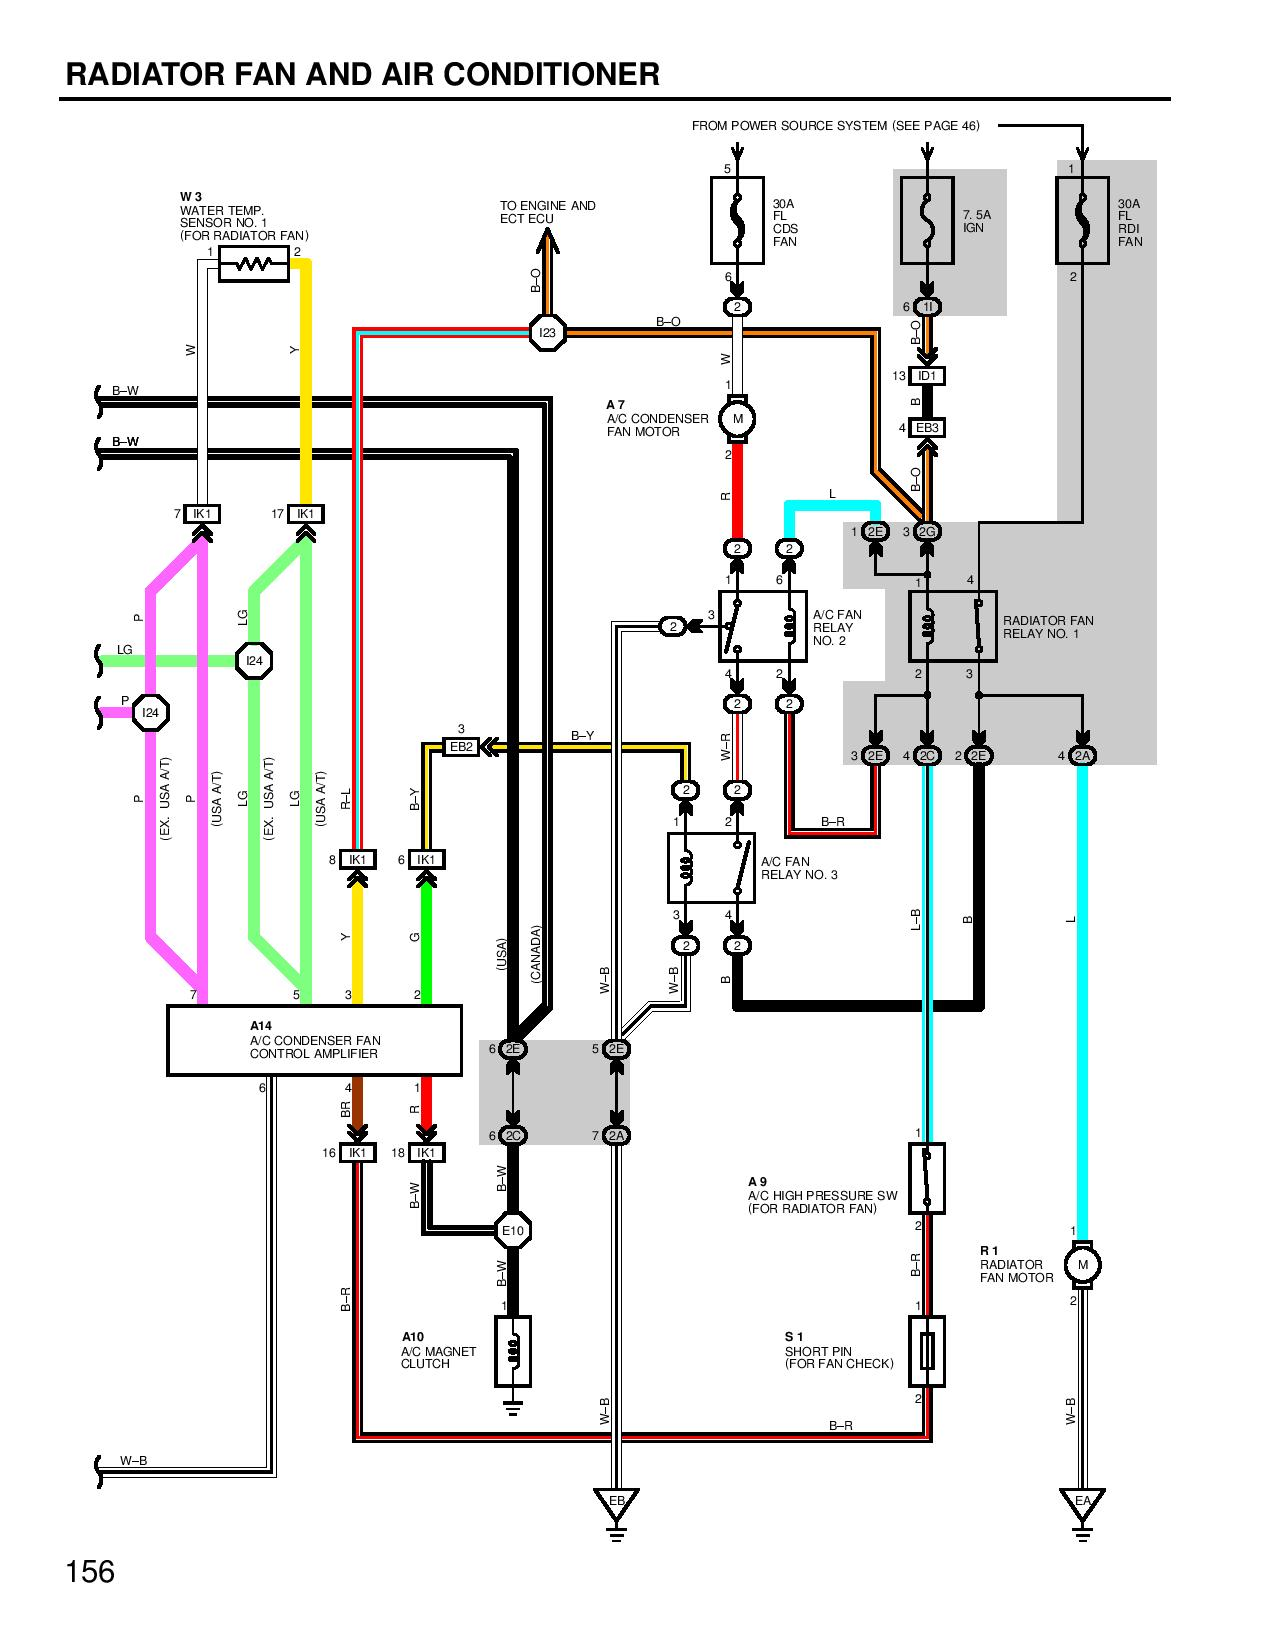 1990 cherokee wiring diagram with Wiring Diagram For Jeep Grand Cherokee 2002 Skism on Brake Light Wiring Diagram together with Jeep 4 2 Engine Vacuum Diagram 1989 Wrangler further 1968 Mustang Wiring Diagram Vacuum Schematics as well 2003 Gmc Sierra Wiring Diagram also 103oz 5 2 Firing Order Diagram.